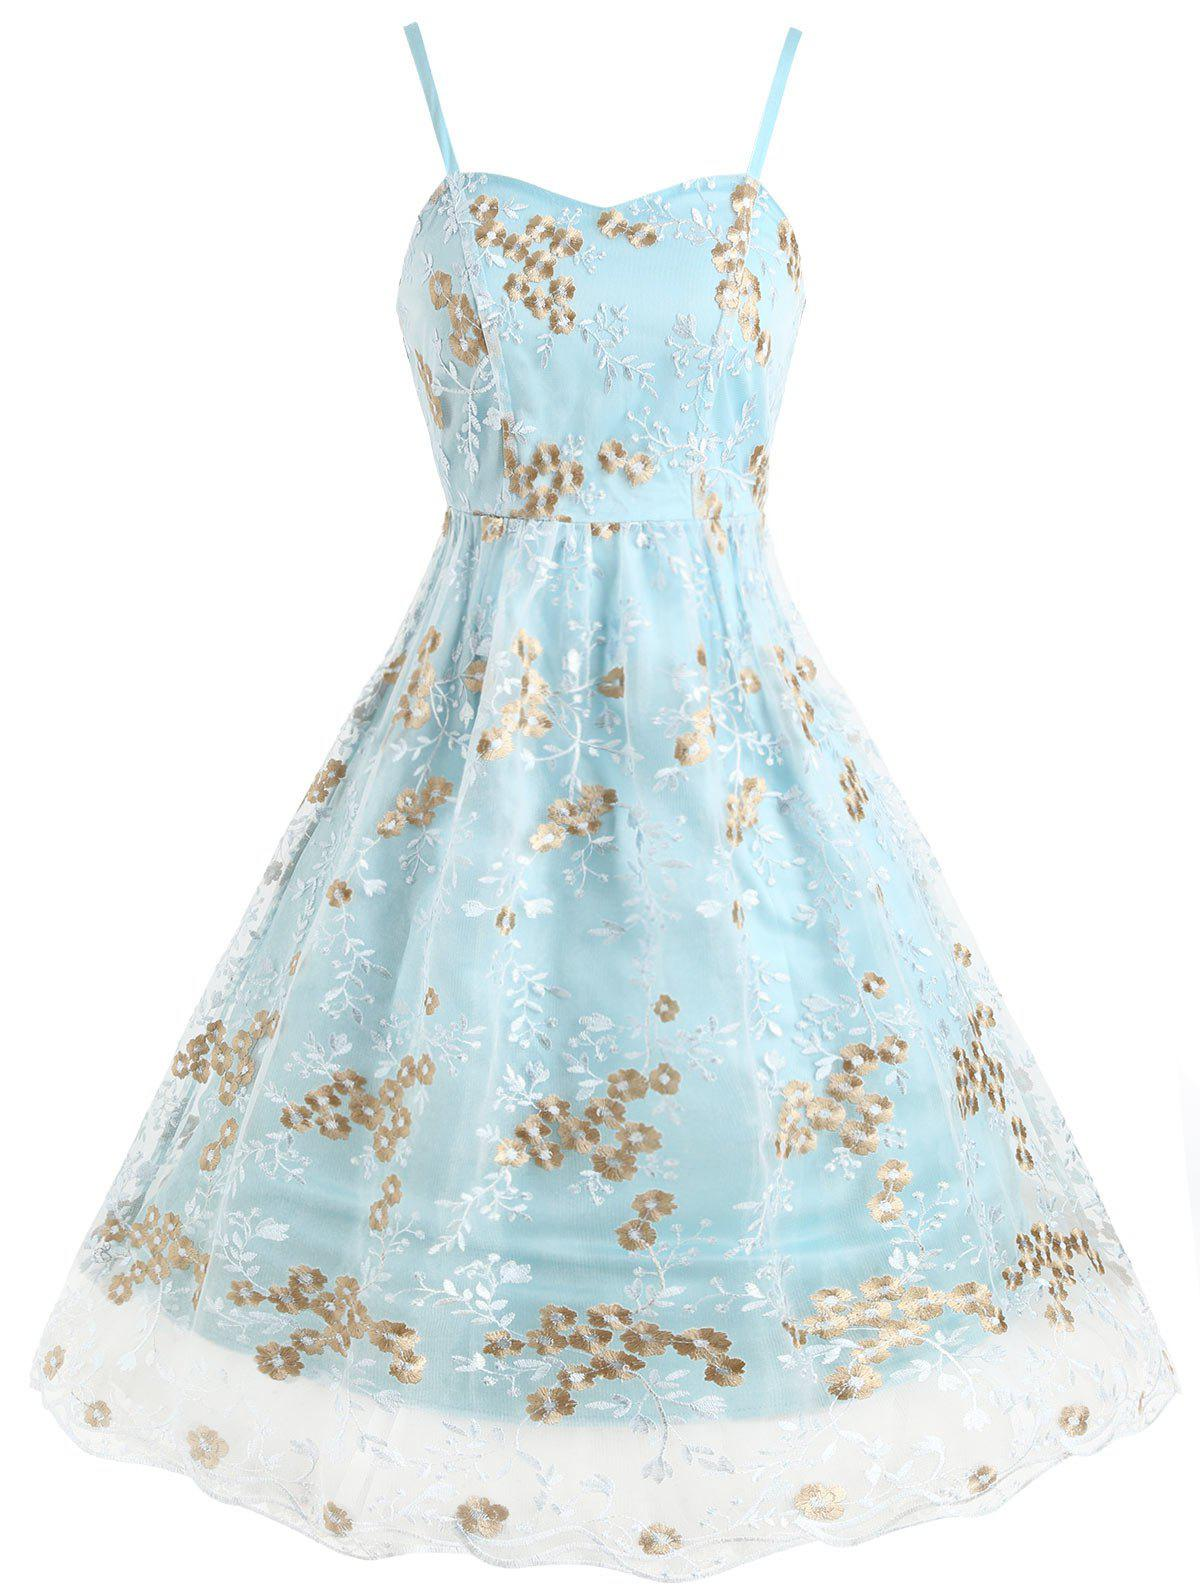 Fashion Floral Embroidered Mesh Panel Swing Dress